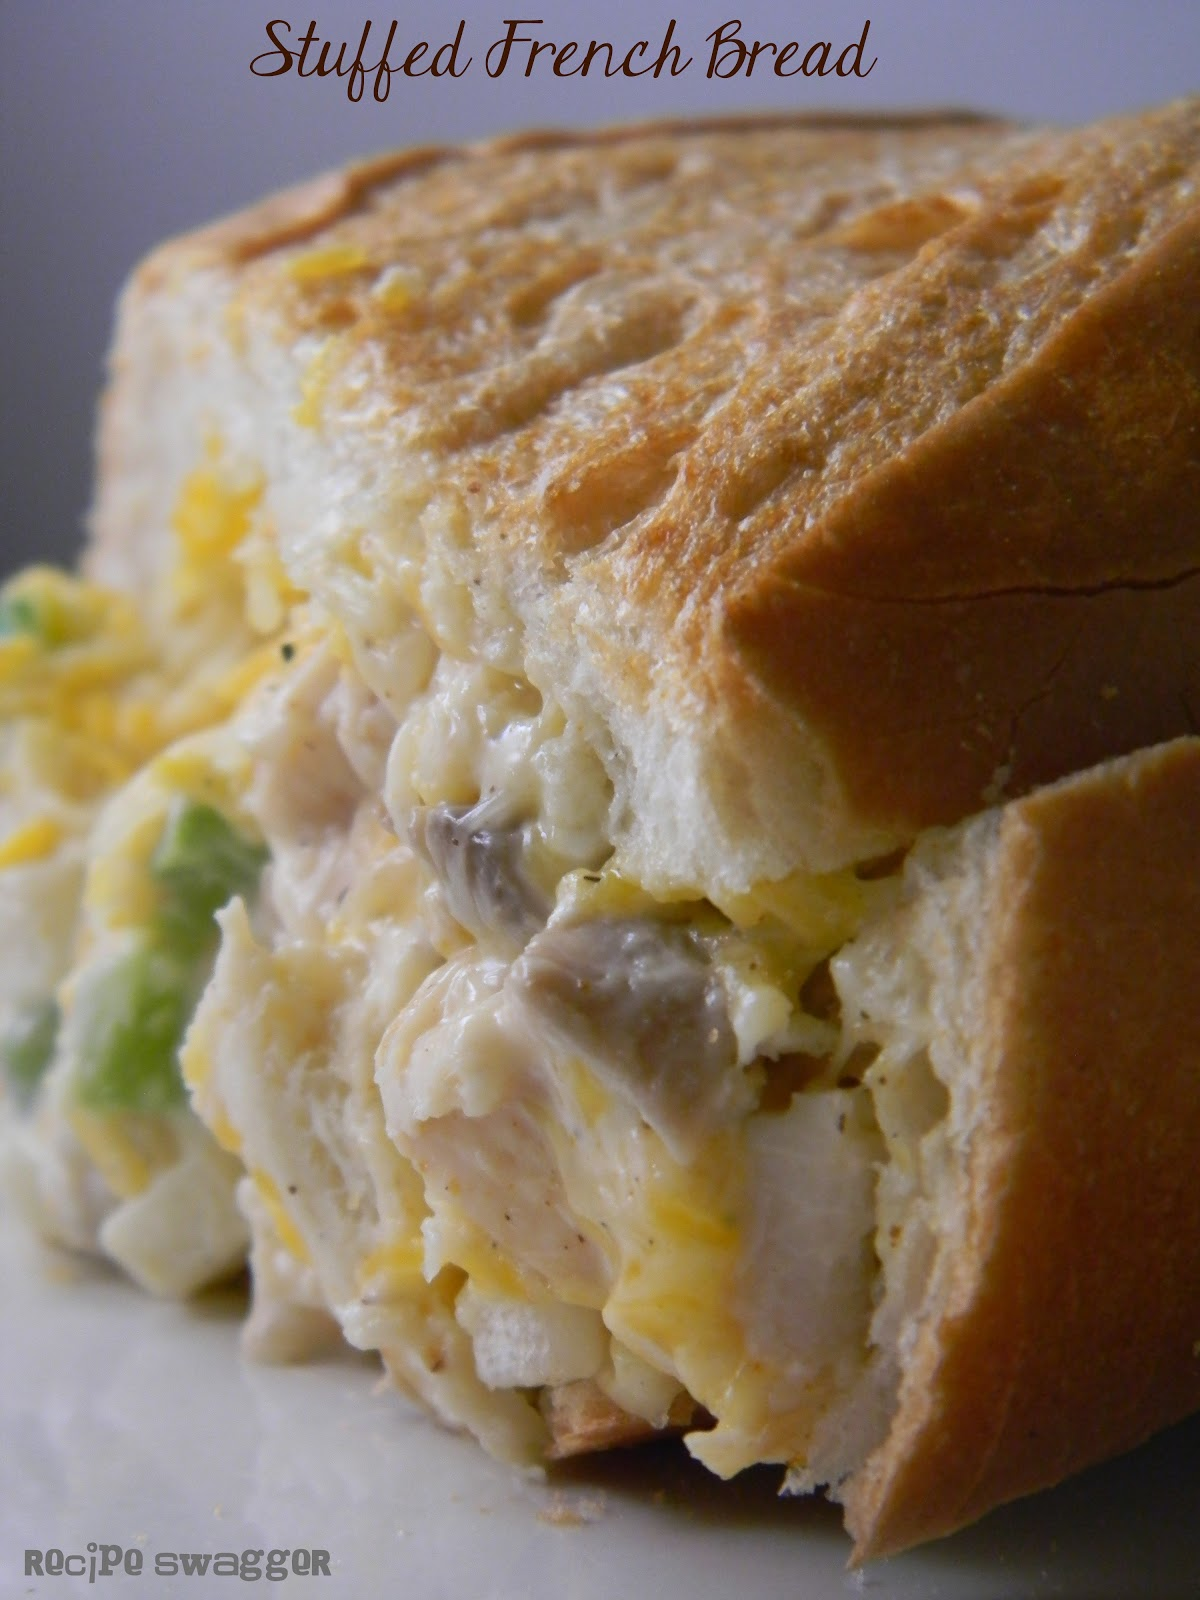 Recipe Swagger: Stuffed French Bread